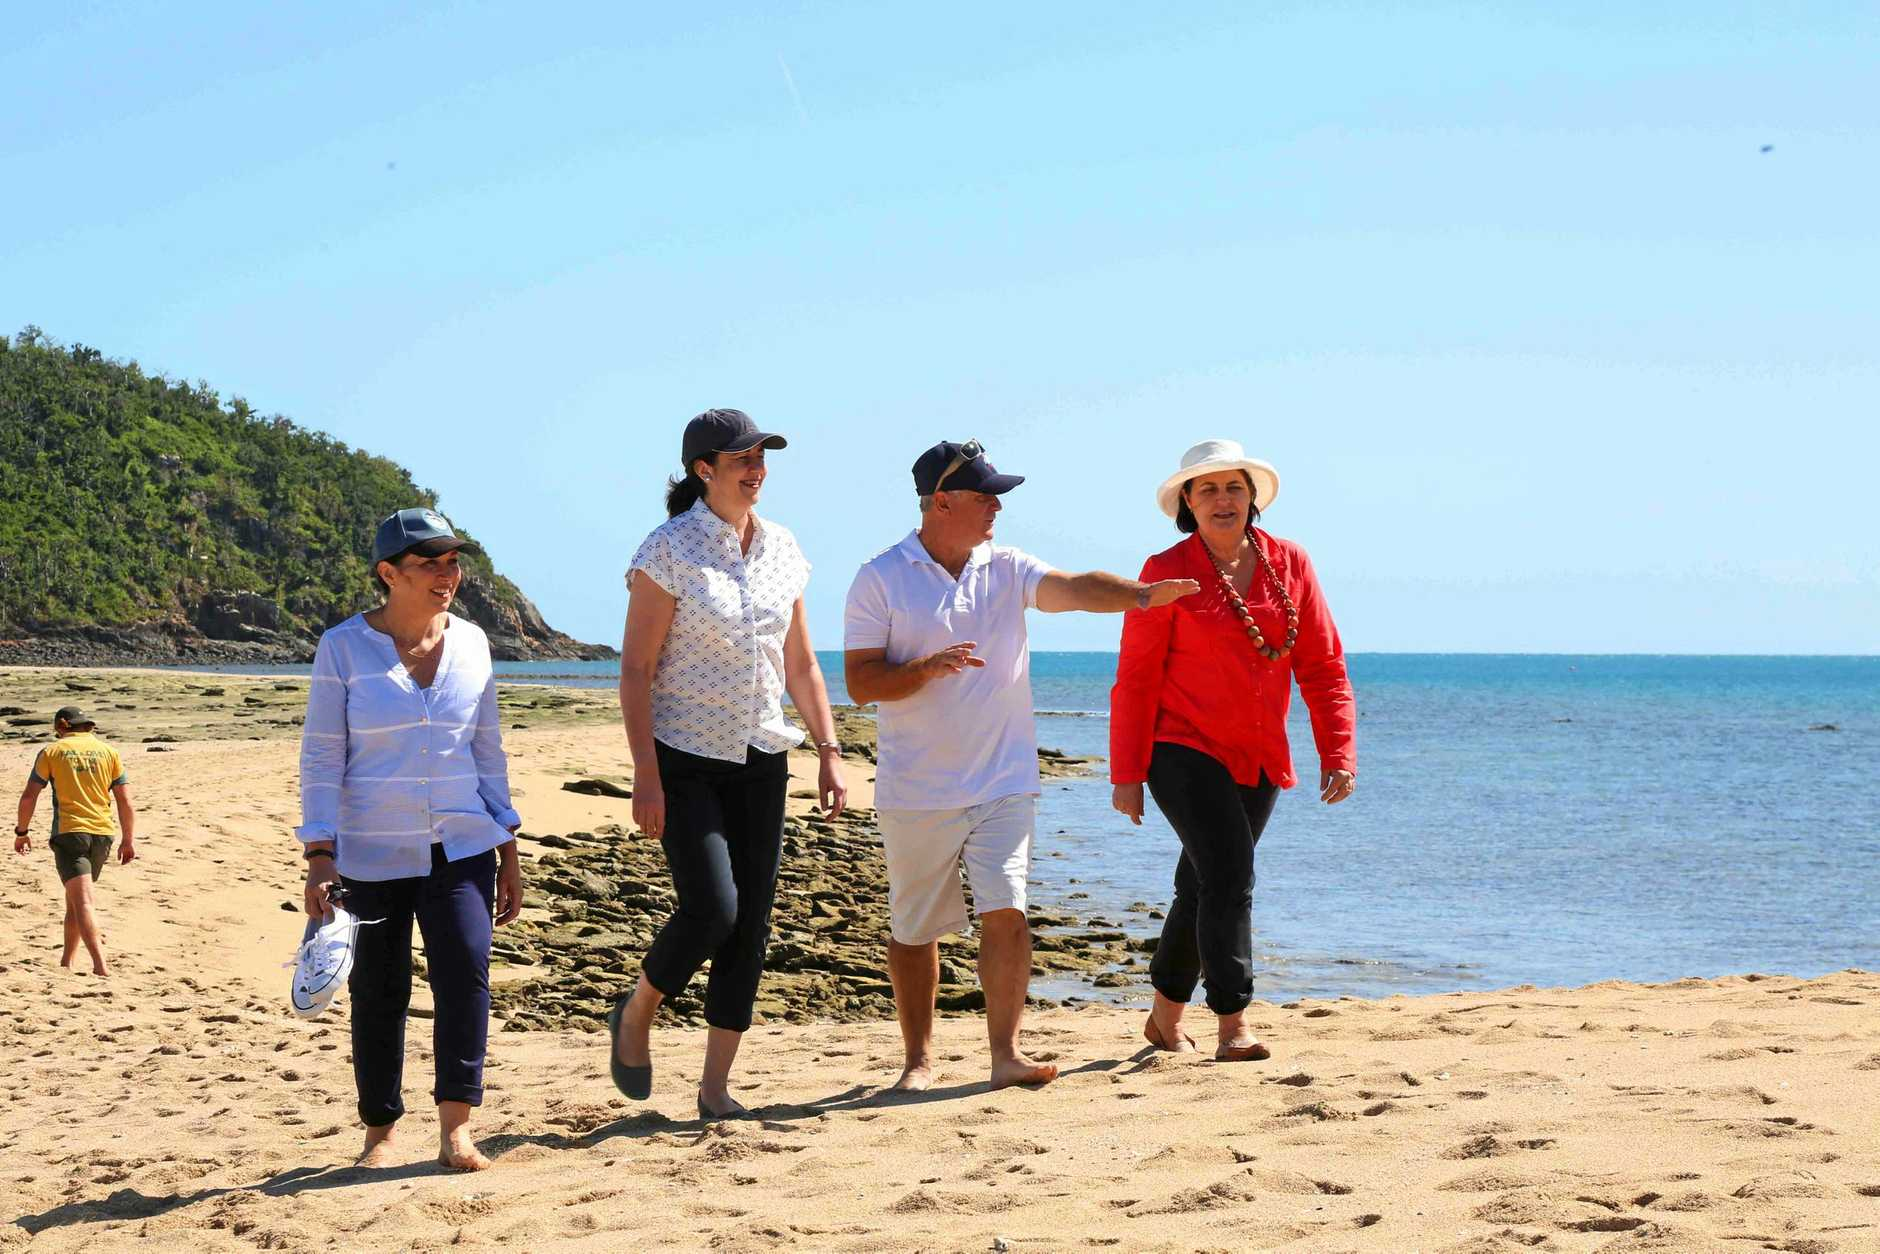 Minister for the Great Barrier Reef Leeanne Enoch with Premier Annastacia Palaszczuk and Tourism Whitsundays chairman Al Grundy and Member for Mackay Julieanne Gilbert at Langford Island on Wednesday.